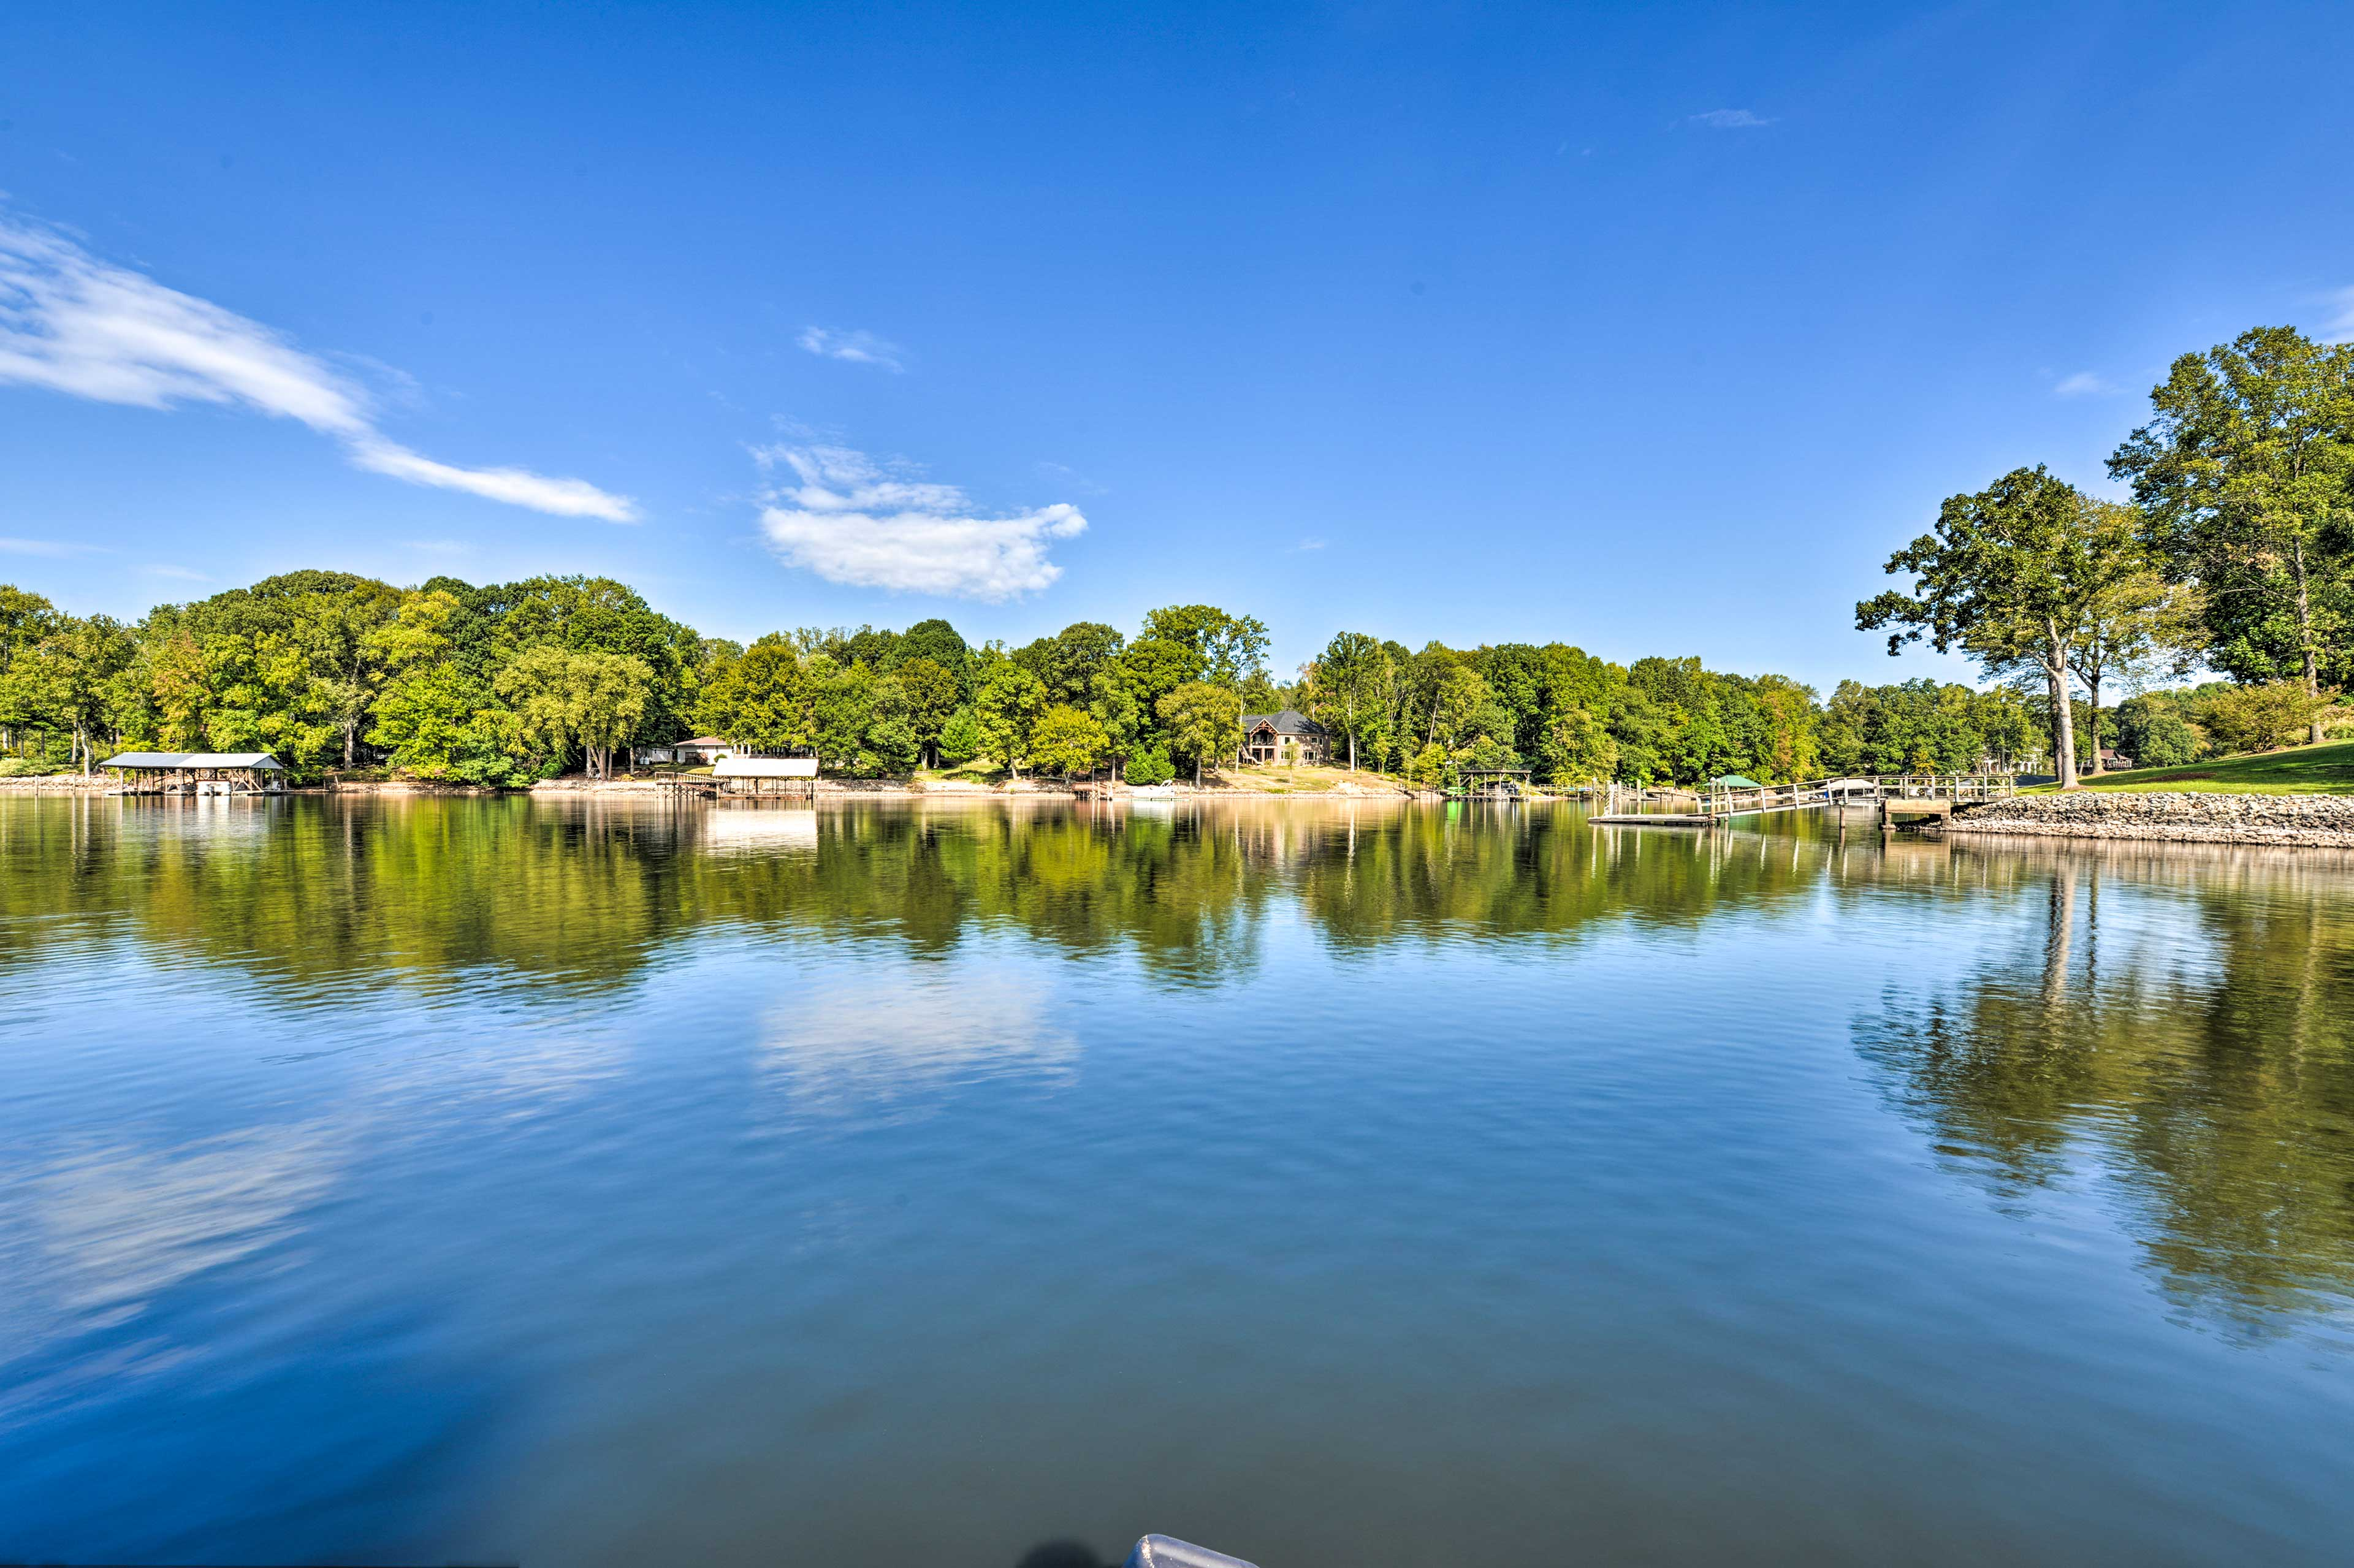 Swimming, fishing, and more await in your backyard!